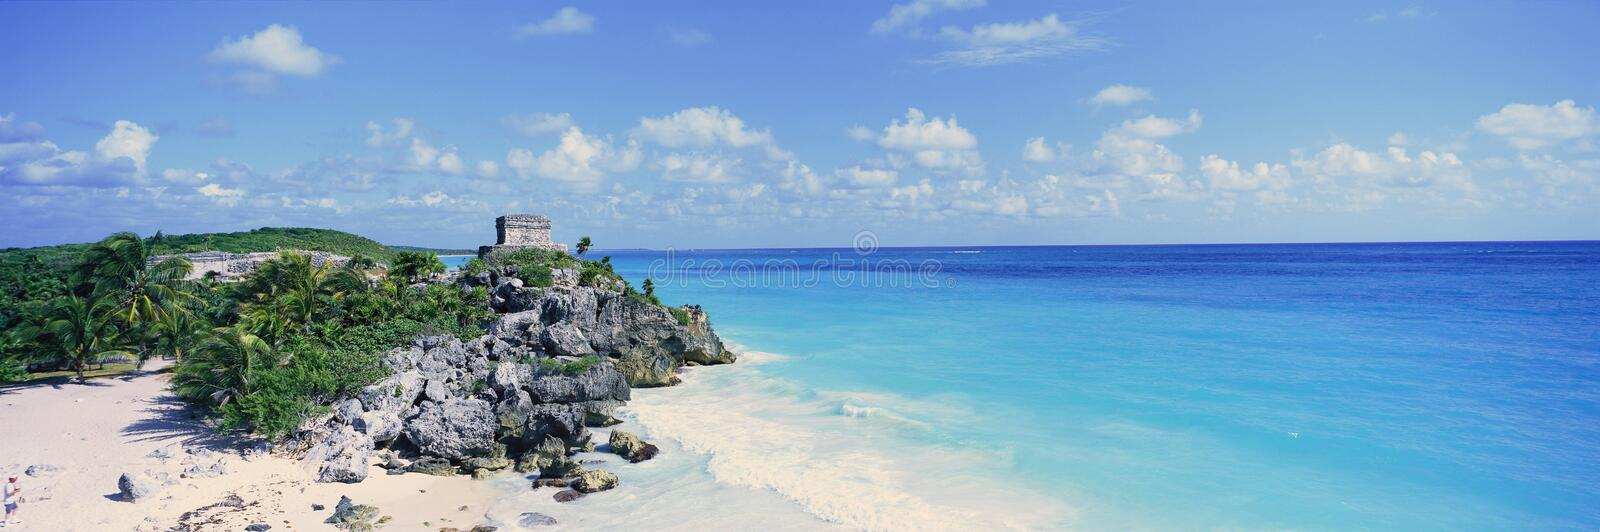 A panoramic view of the Templo del Dios del Viento Mayan ruins of Ruinas de Tulum (Tulum Ruins) in Quintana Roo, Yucatan Peninsula. Mexico stock images